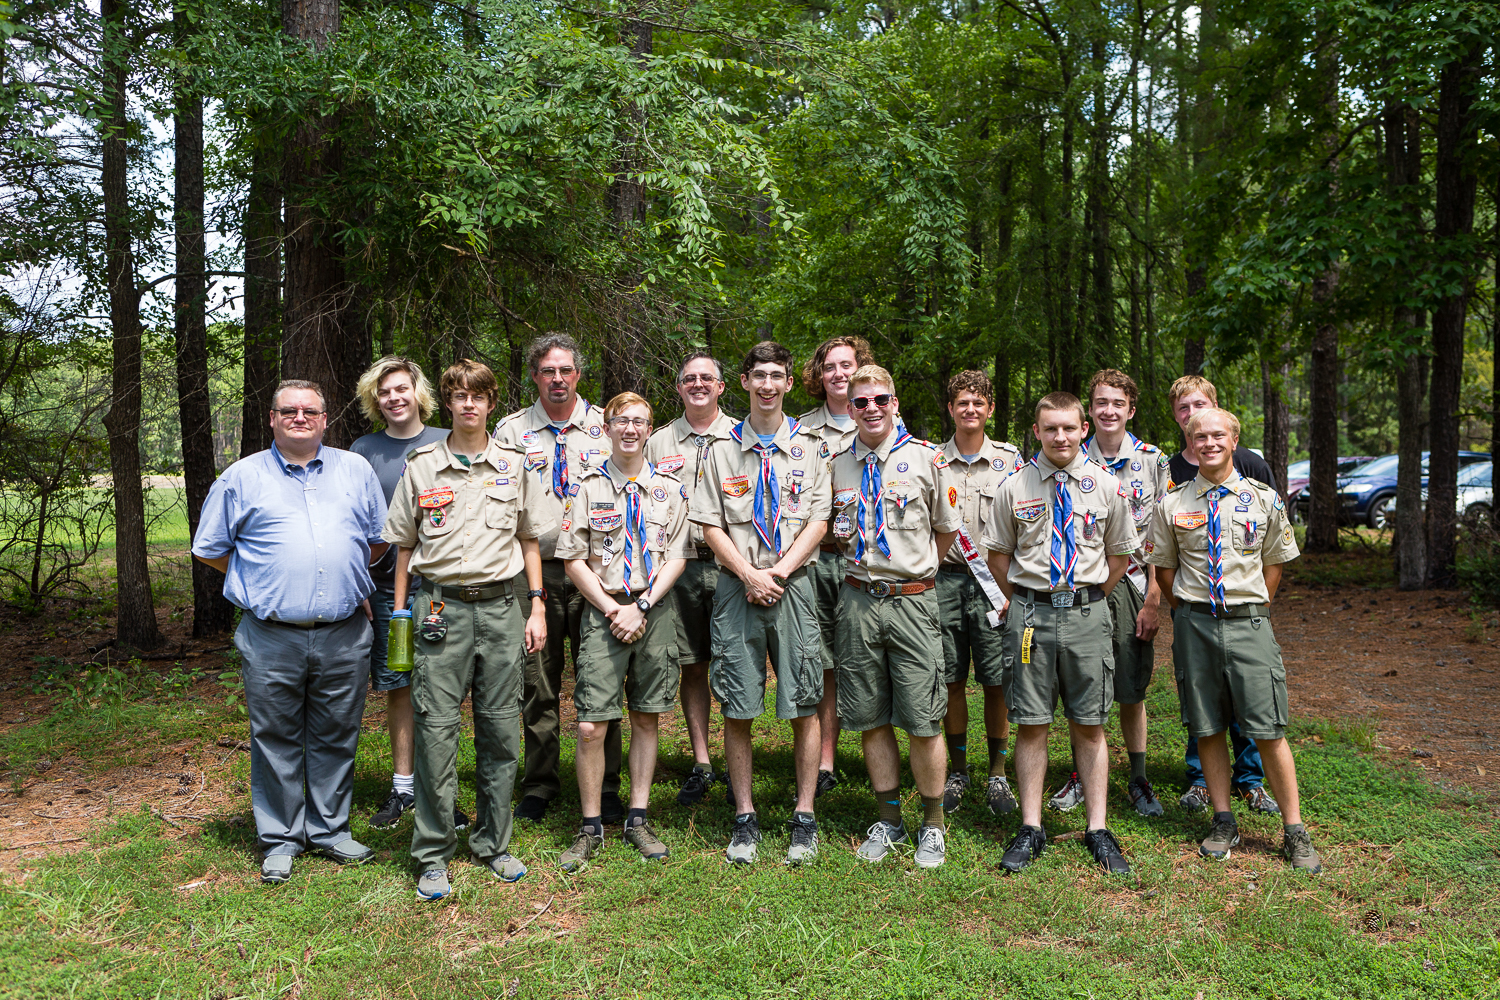 eagle-scout-ceremony-15.jpg